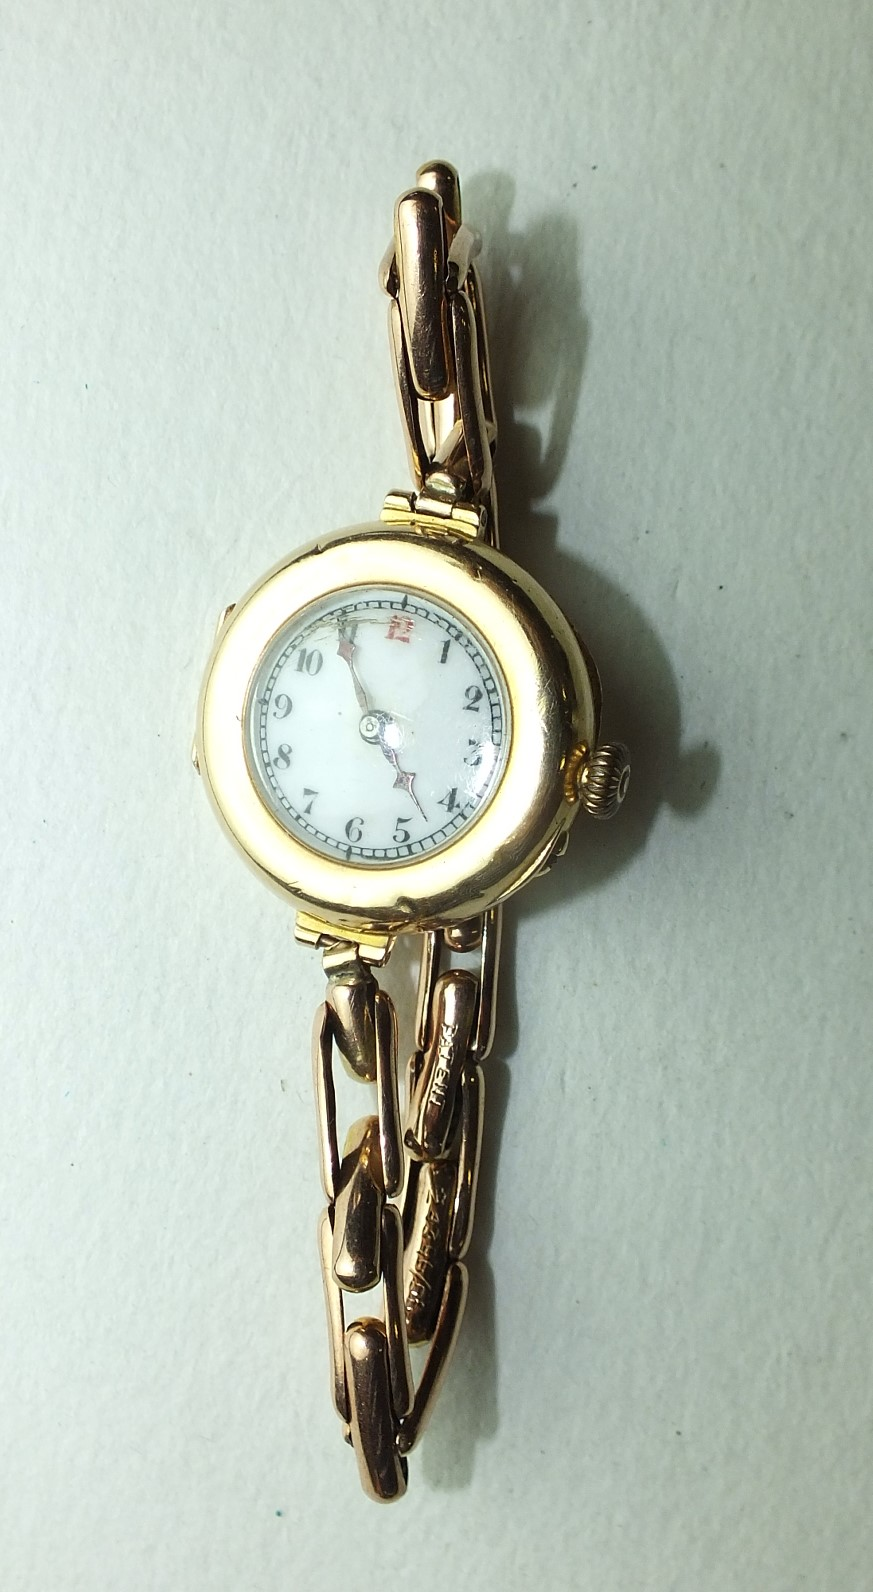 Lot 237 - A ladies 15ct-gold-cased wrist watch on 9ct gold sprung bracelet, gross weight 20.5g.